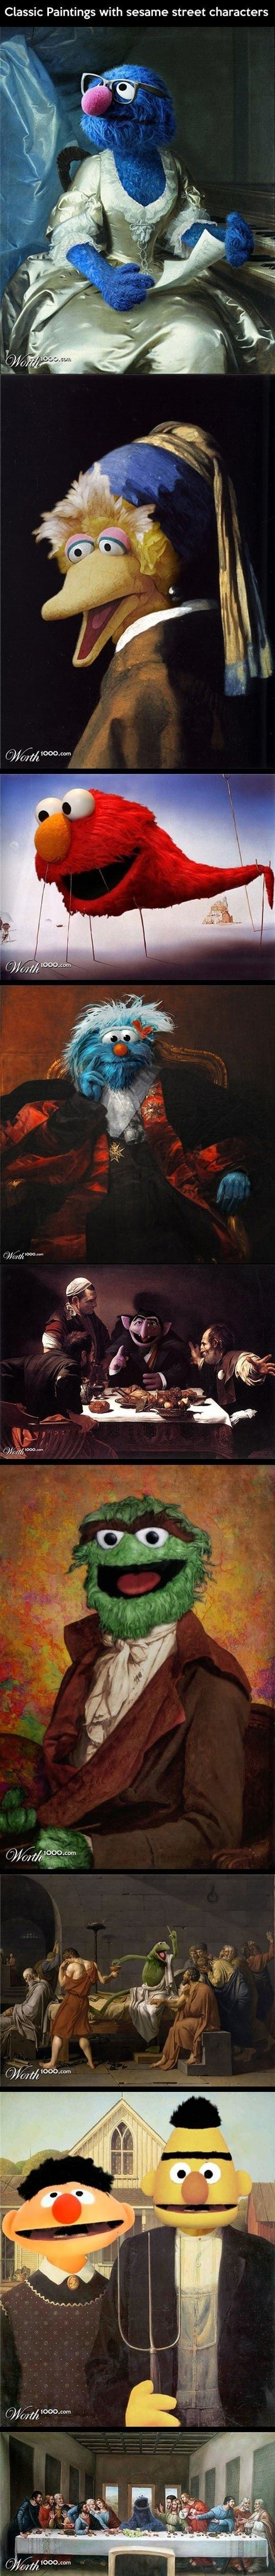 Sesame Street Classic Paintings